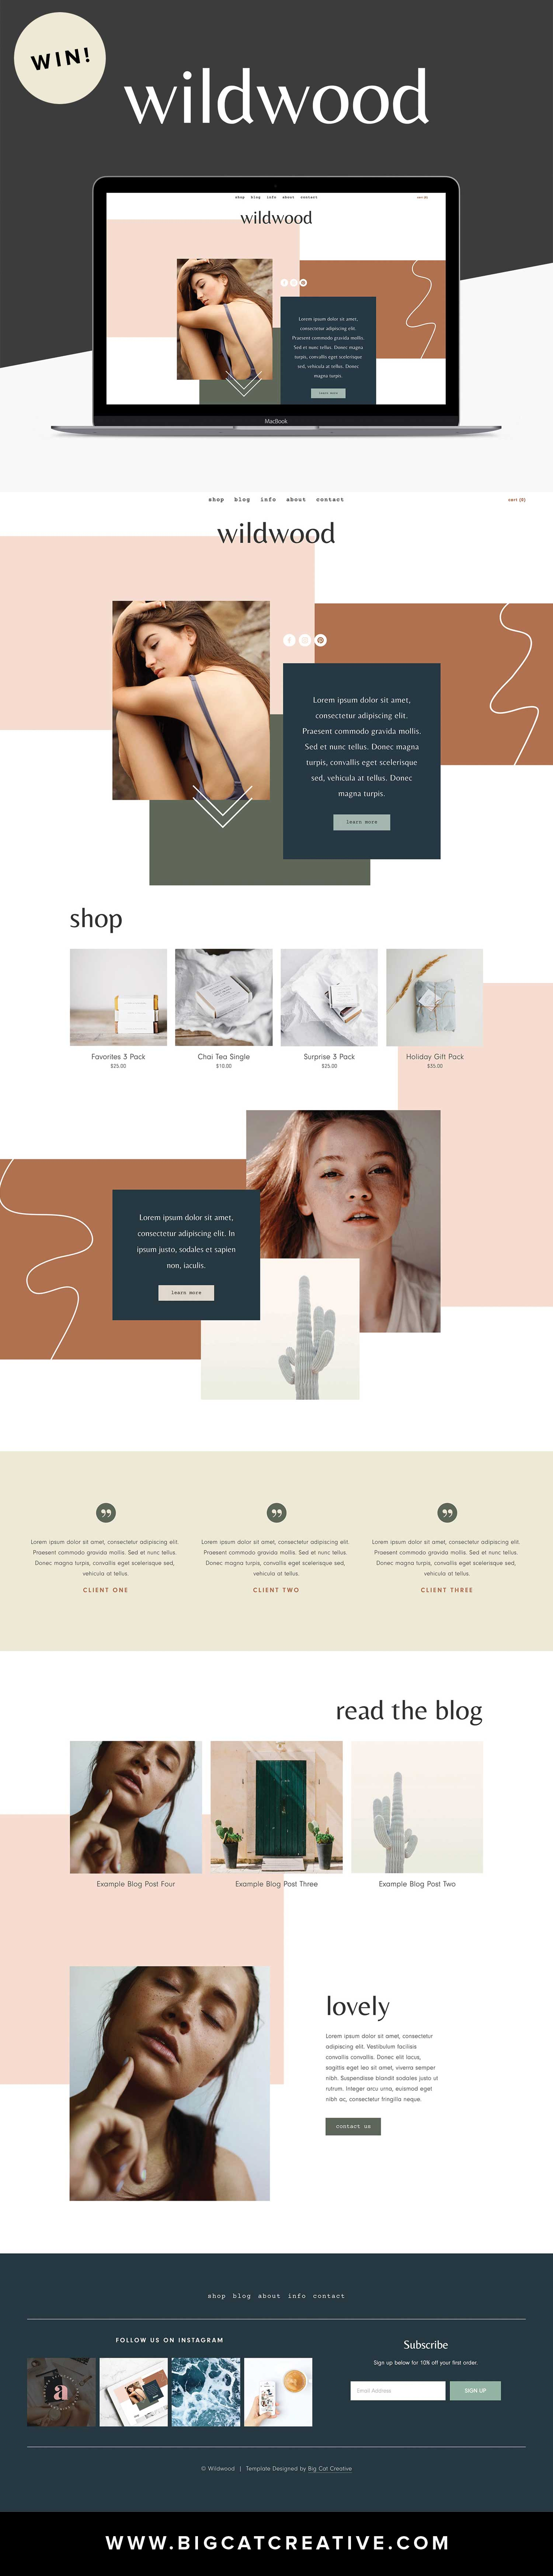 ** GIVEAWAY** The Wildwood Squarespace Template Kit is an artistic website theme with an abstract, collage style layout. It's highly customizable and perfect for any small business #squarespace #template #website